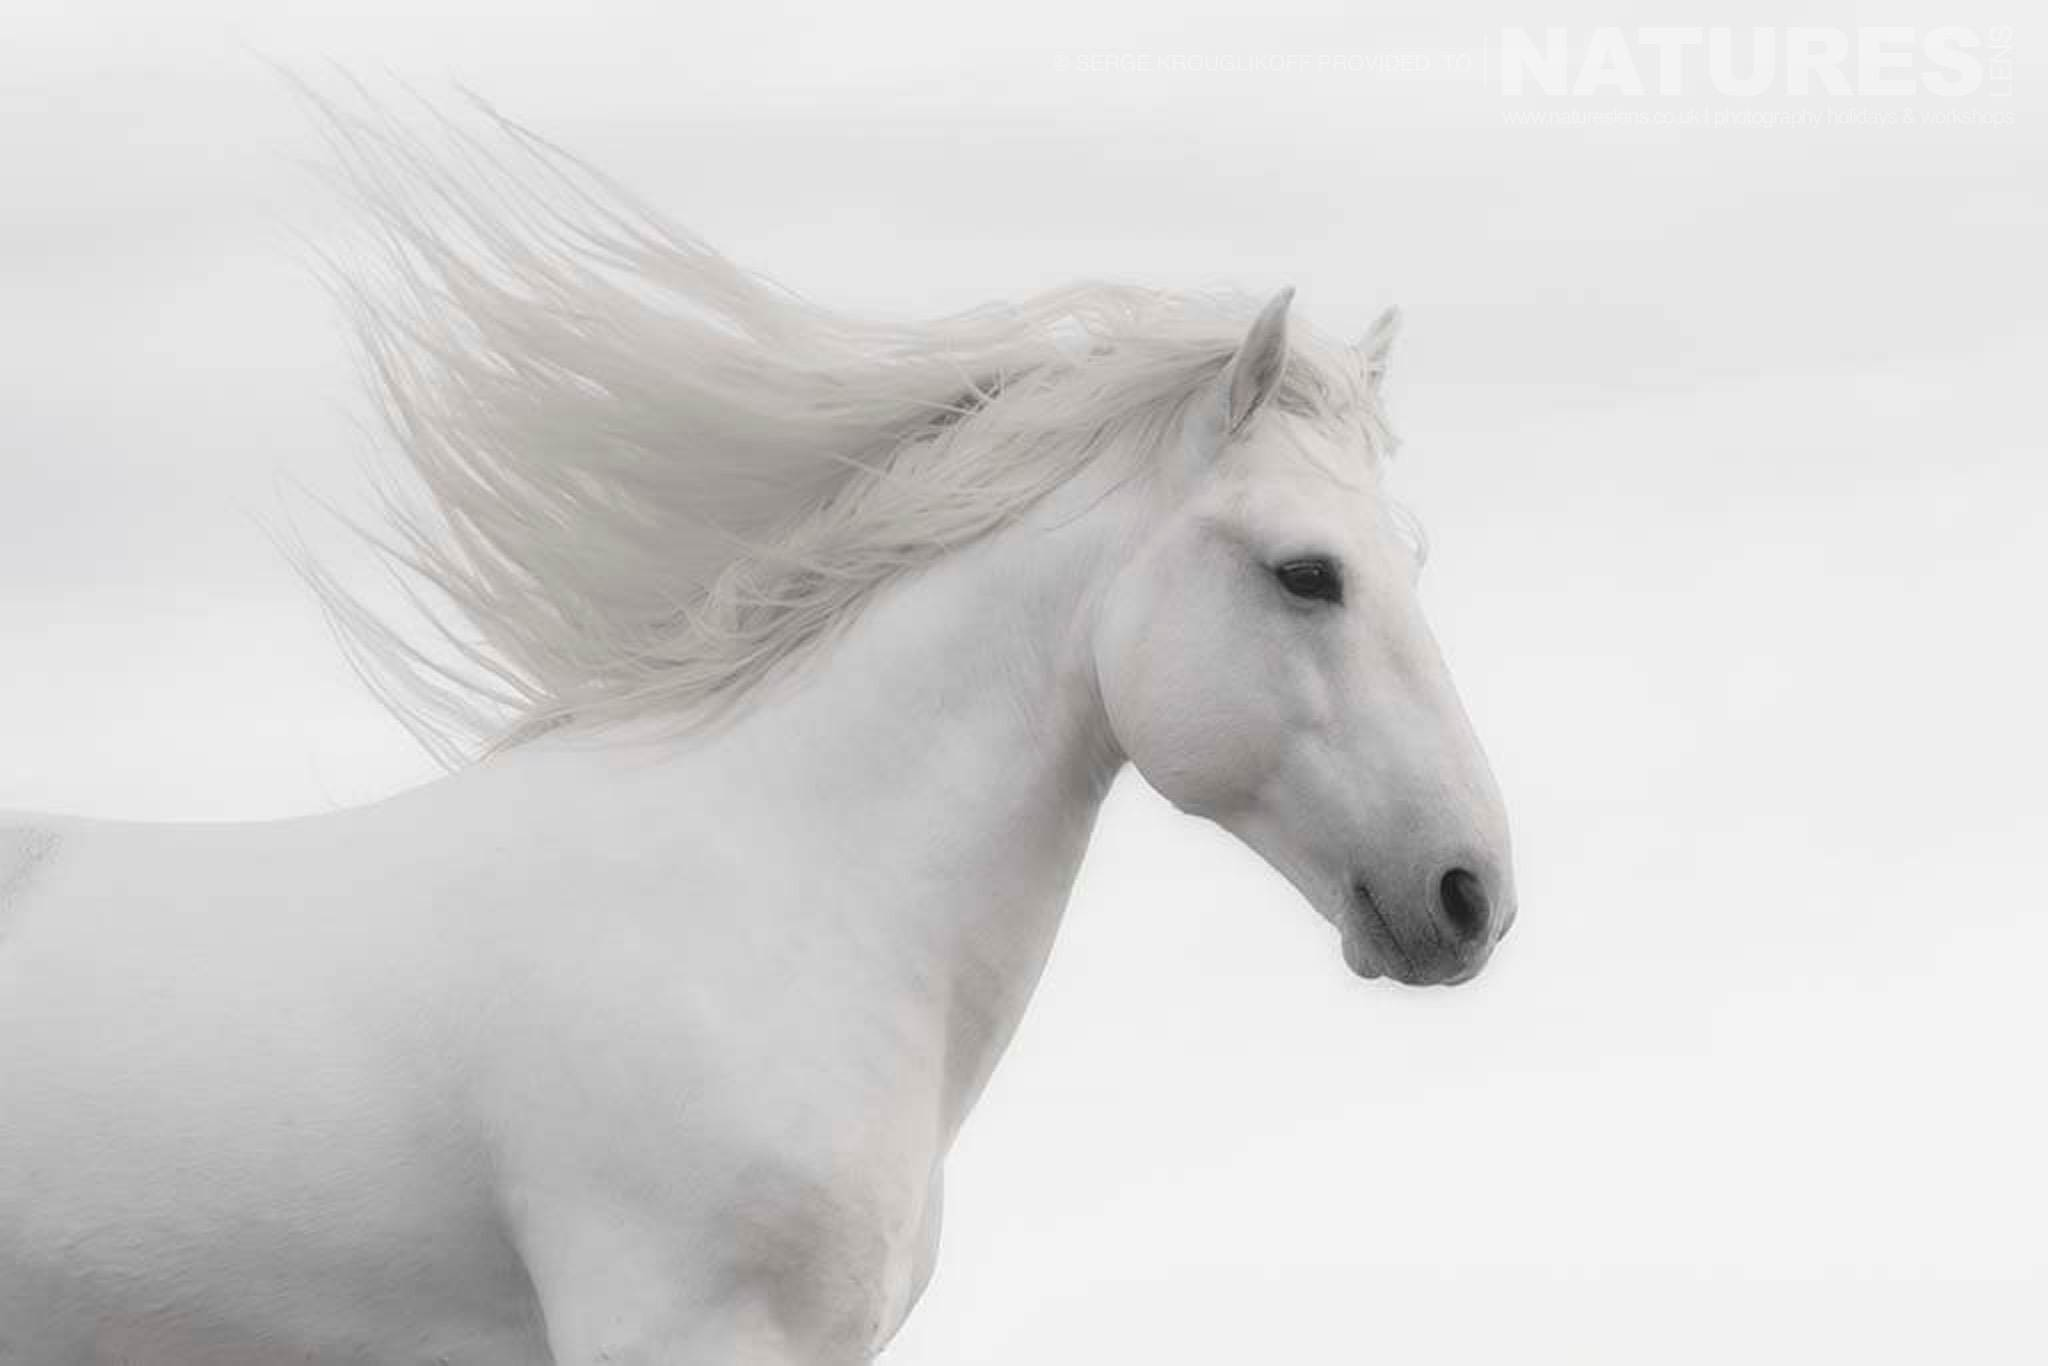 A dream like portrait of a white stallion typical of the type of image that may be captured during the NaturesLens Wild White Horses of the Camargue Photography Holiday